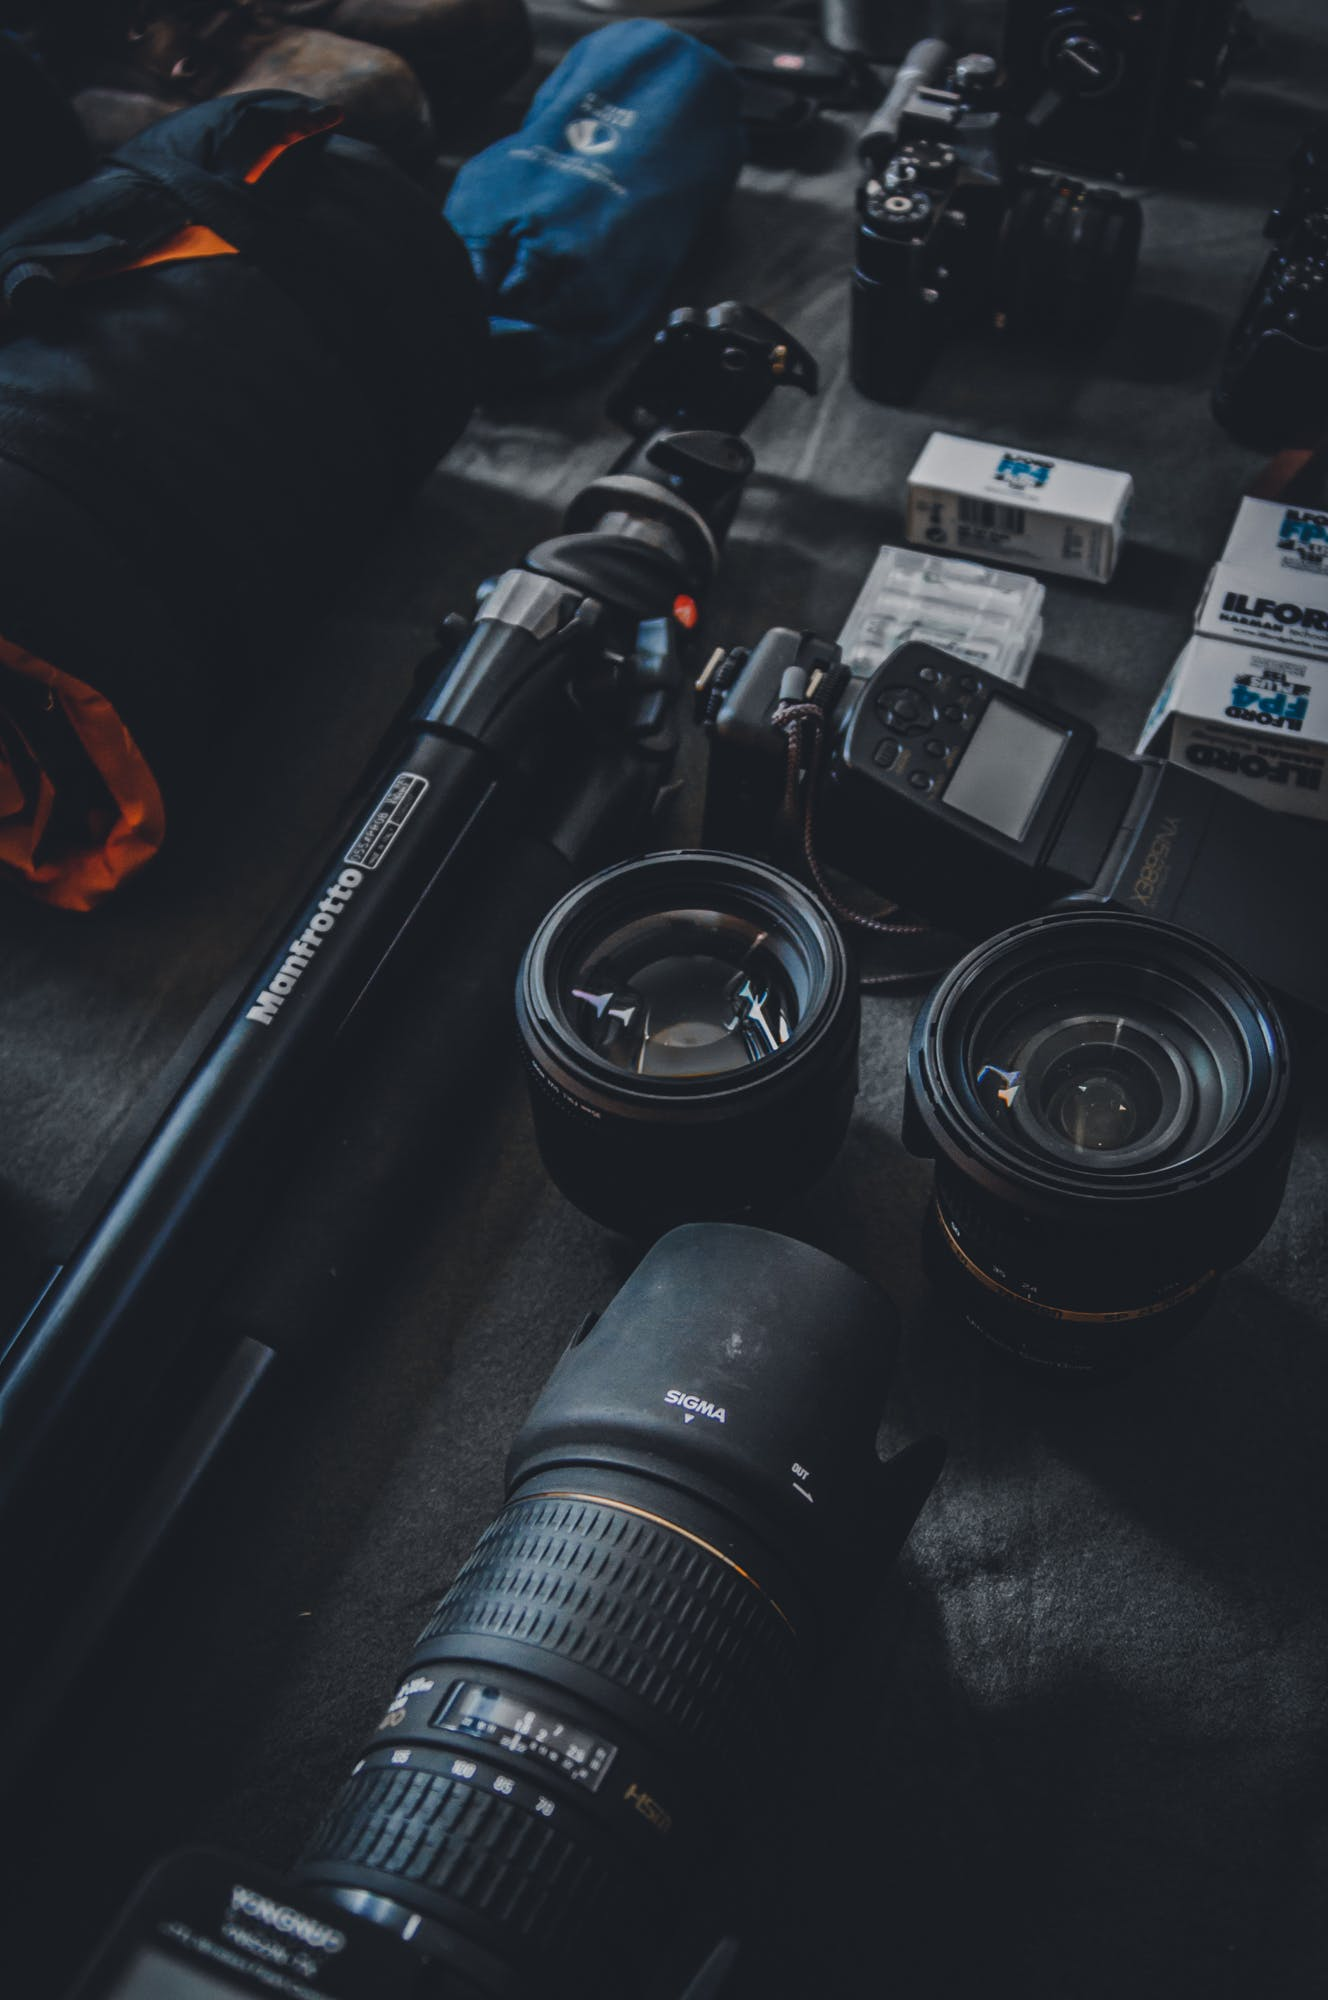 Selective Focus Photography of Dslr Camera Parts